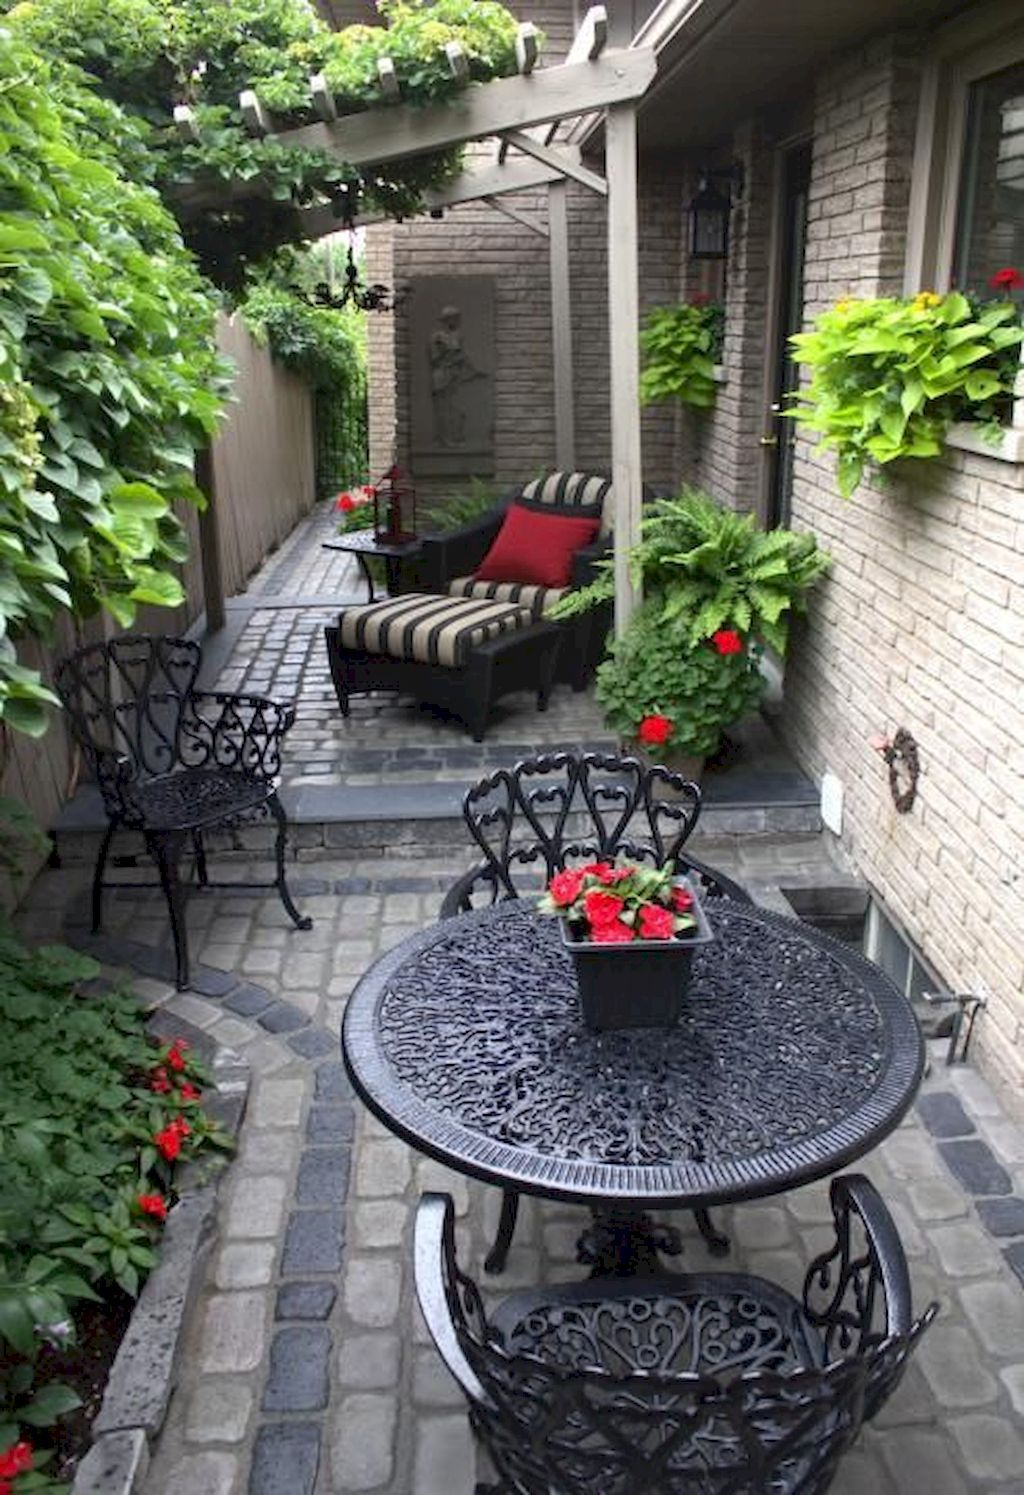 insidexterior com insidexterior resources and on beautiful backyard garden design ideas and remodel create your extraordinary garden id=18119